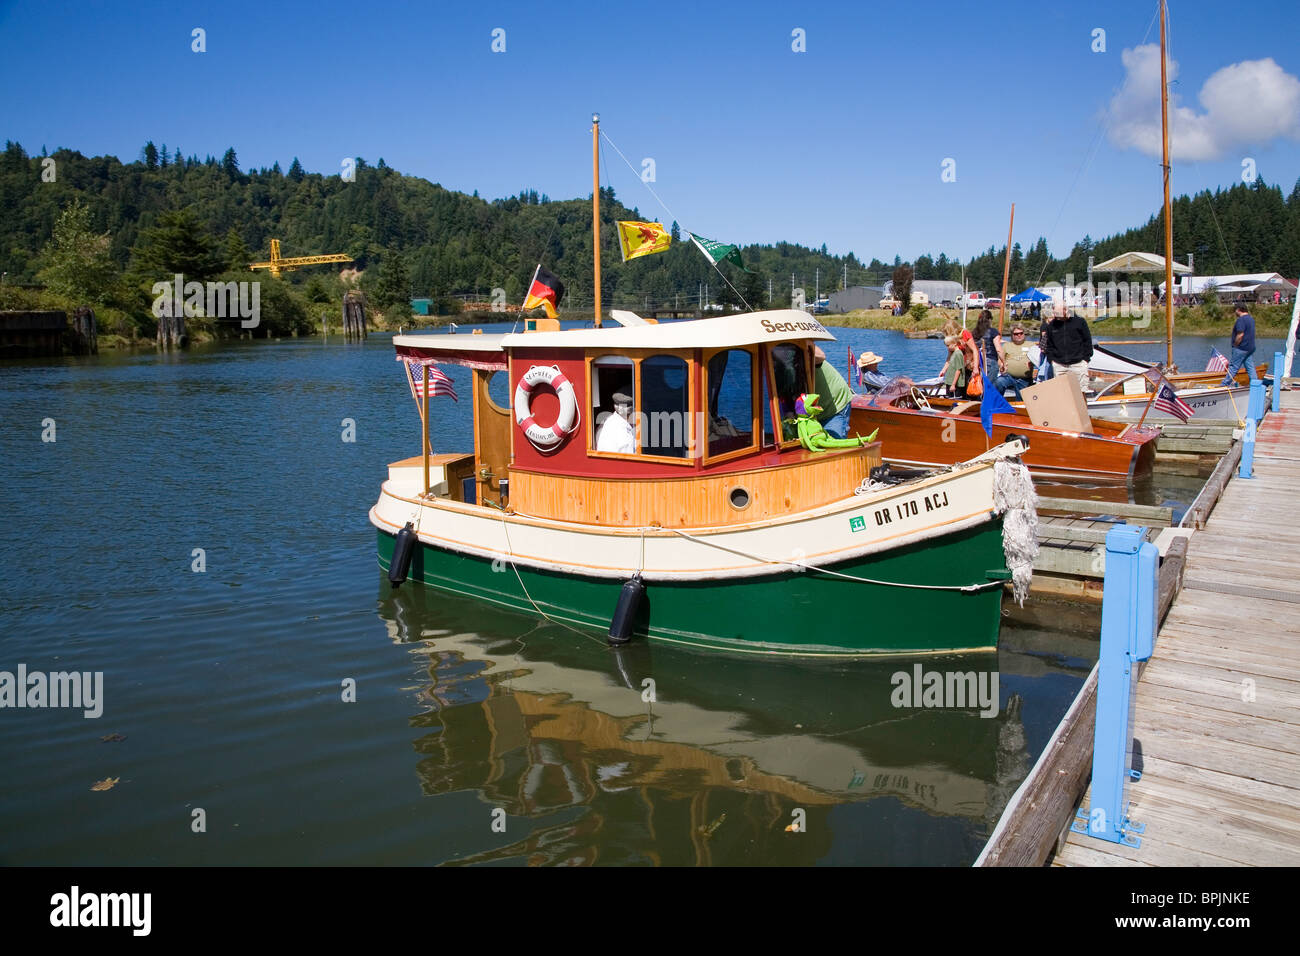 Wooden boats on the Yaquina River at an annual Wooden Boat show in Toledo, Oregon Stock Photo